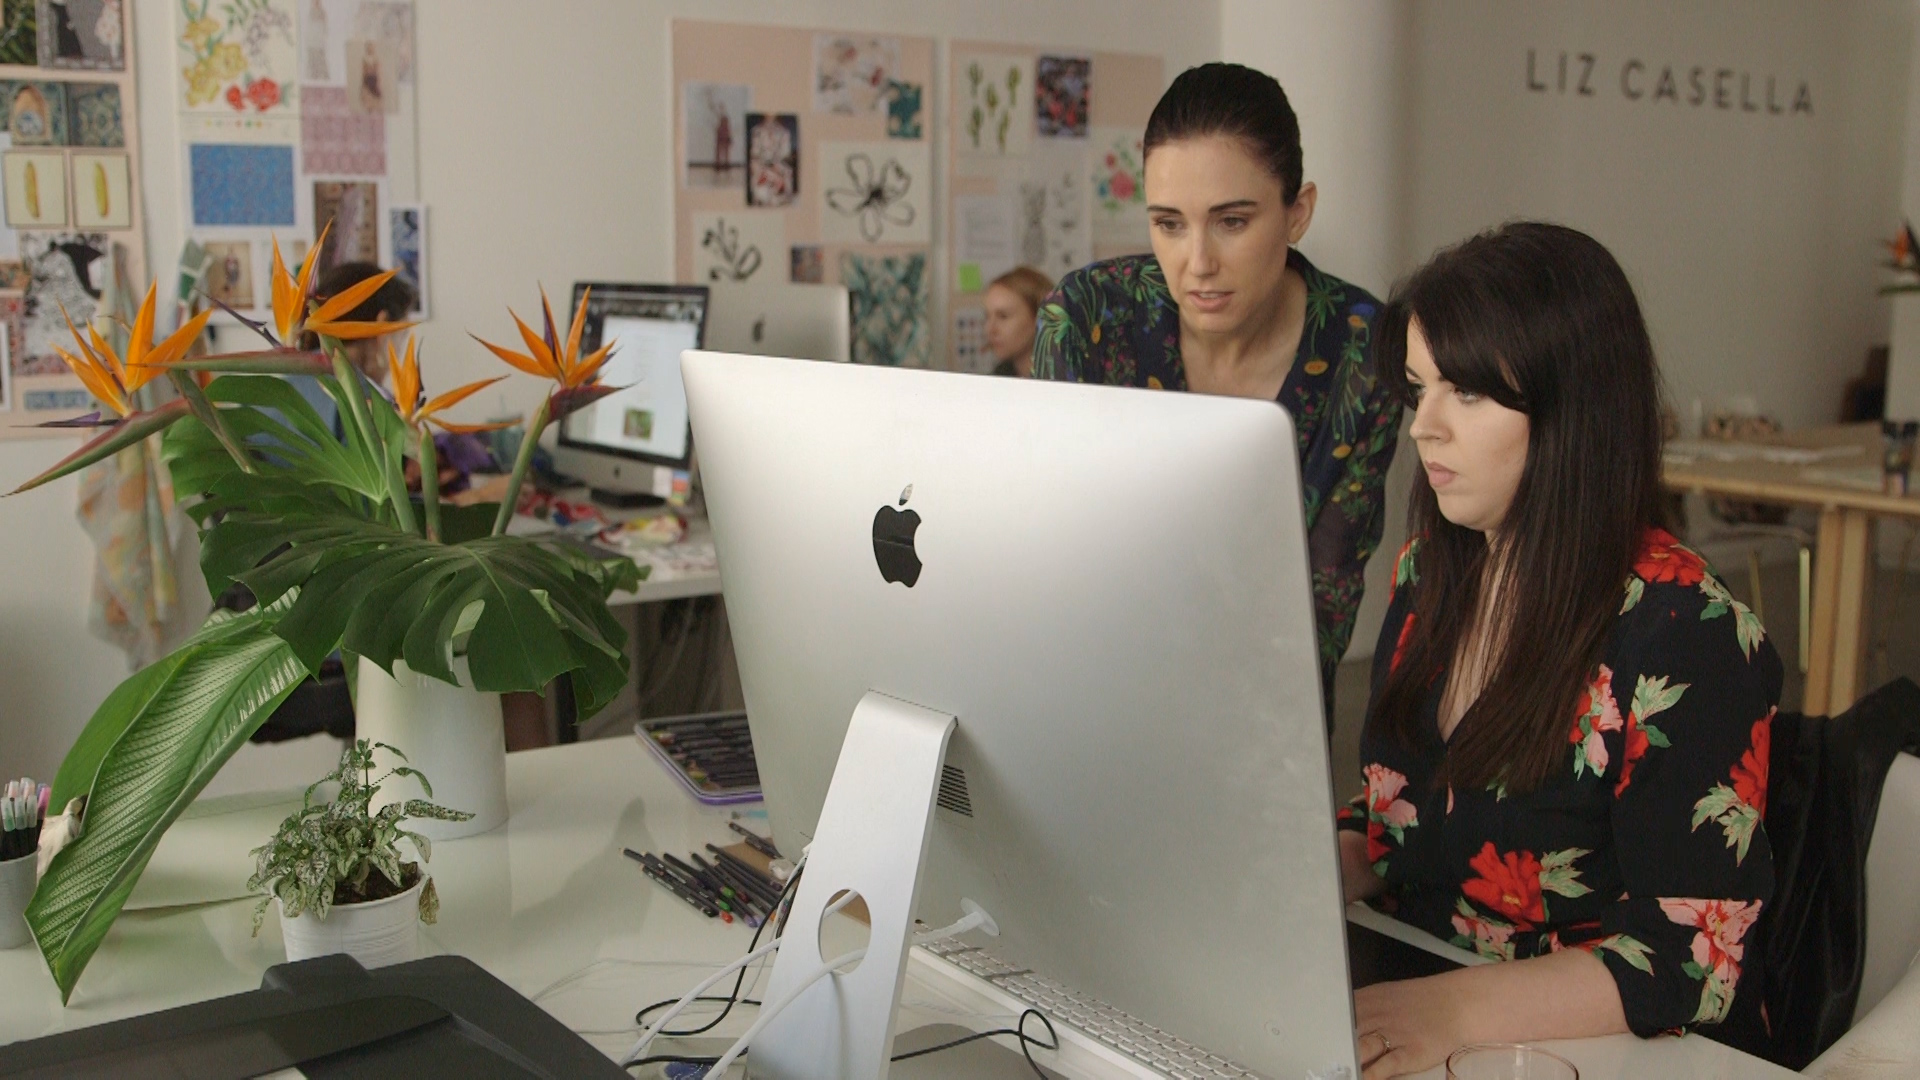 Liz Casella working with an employee in her office.jpg